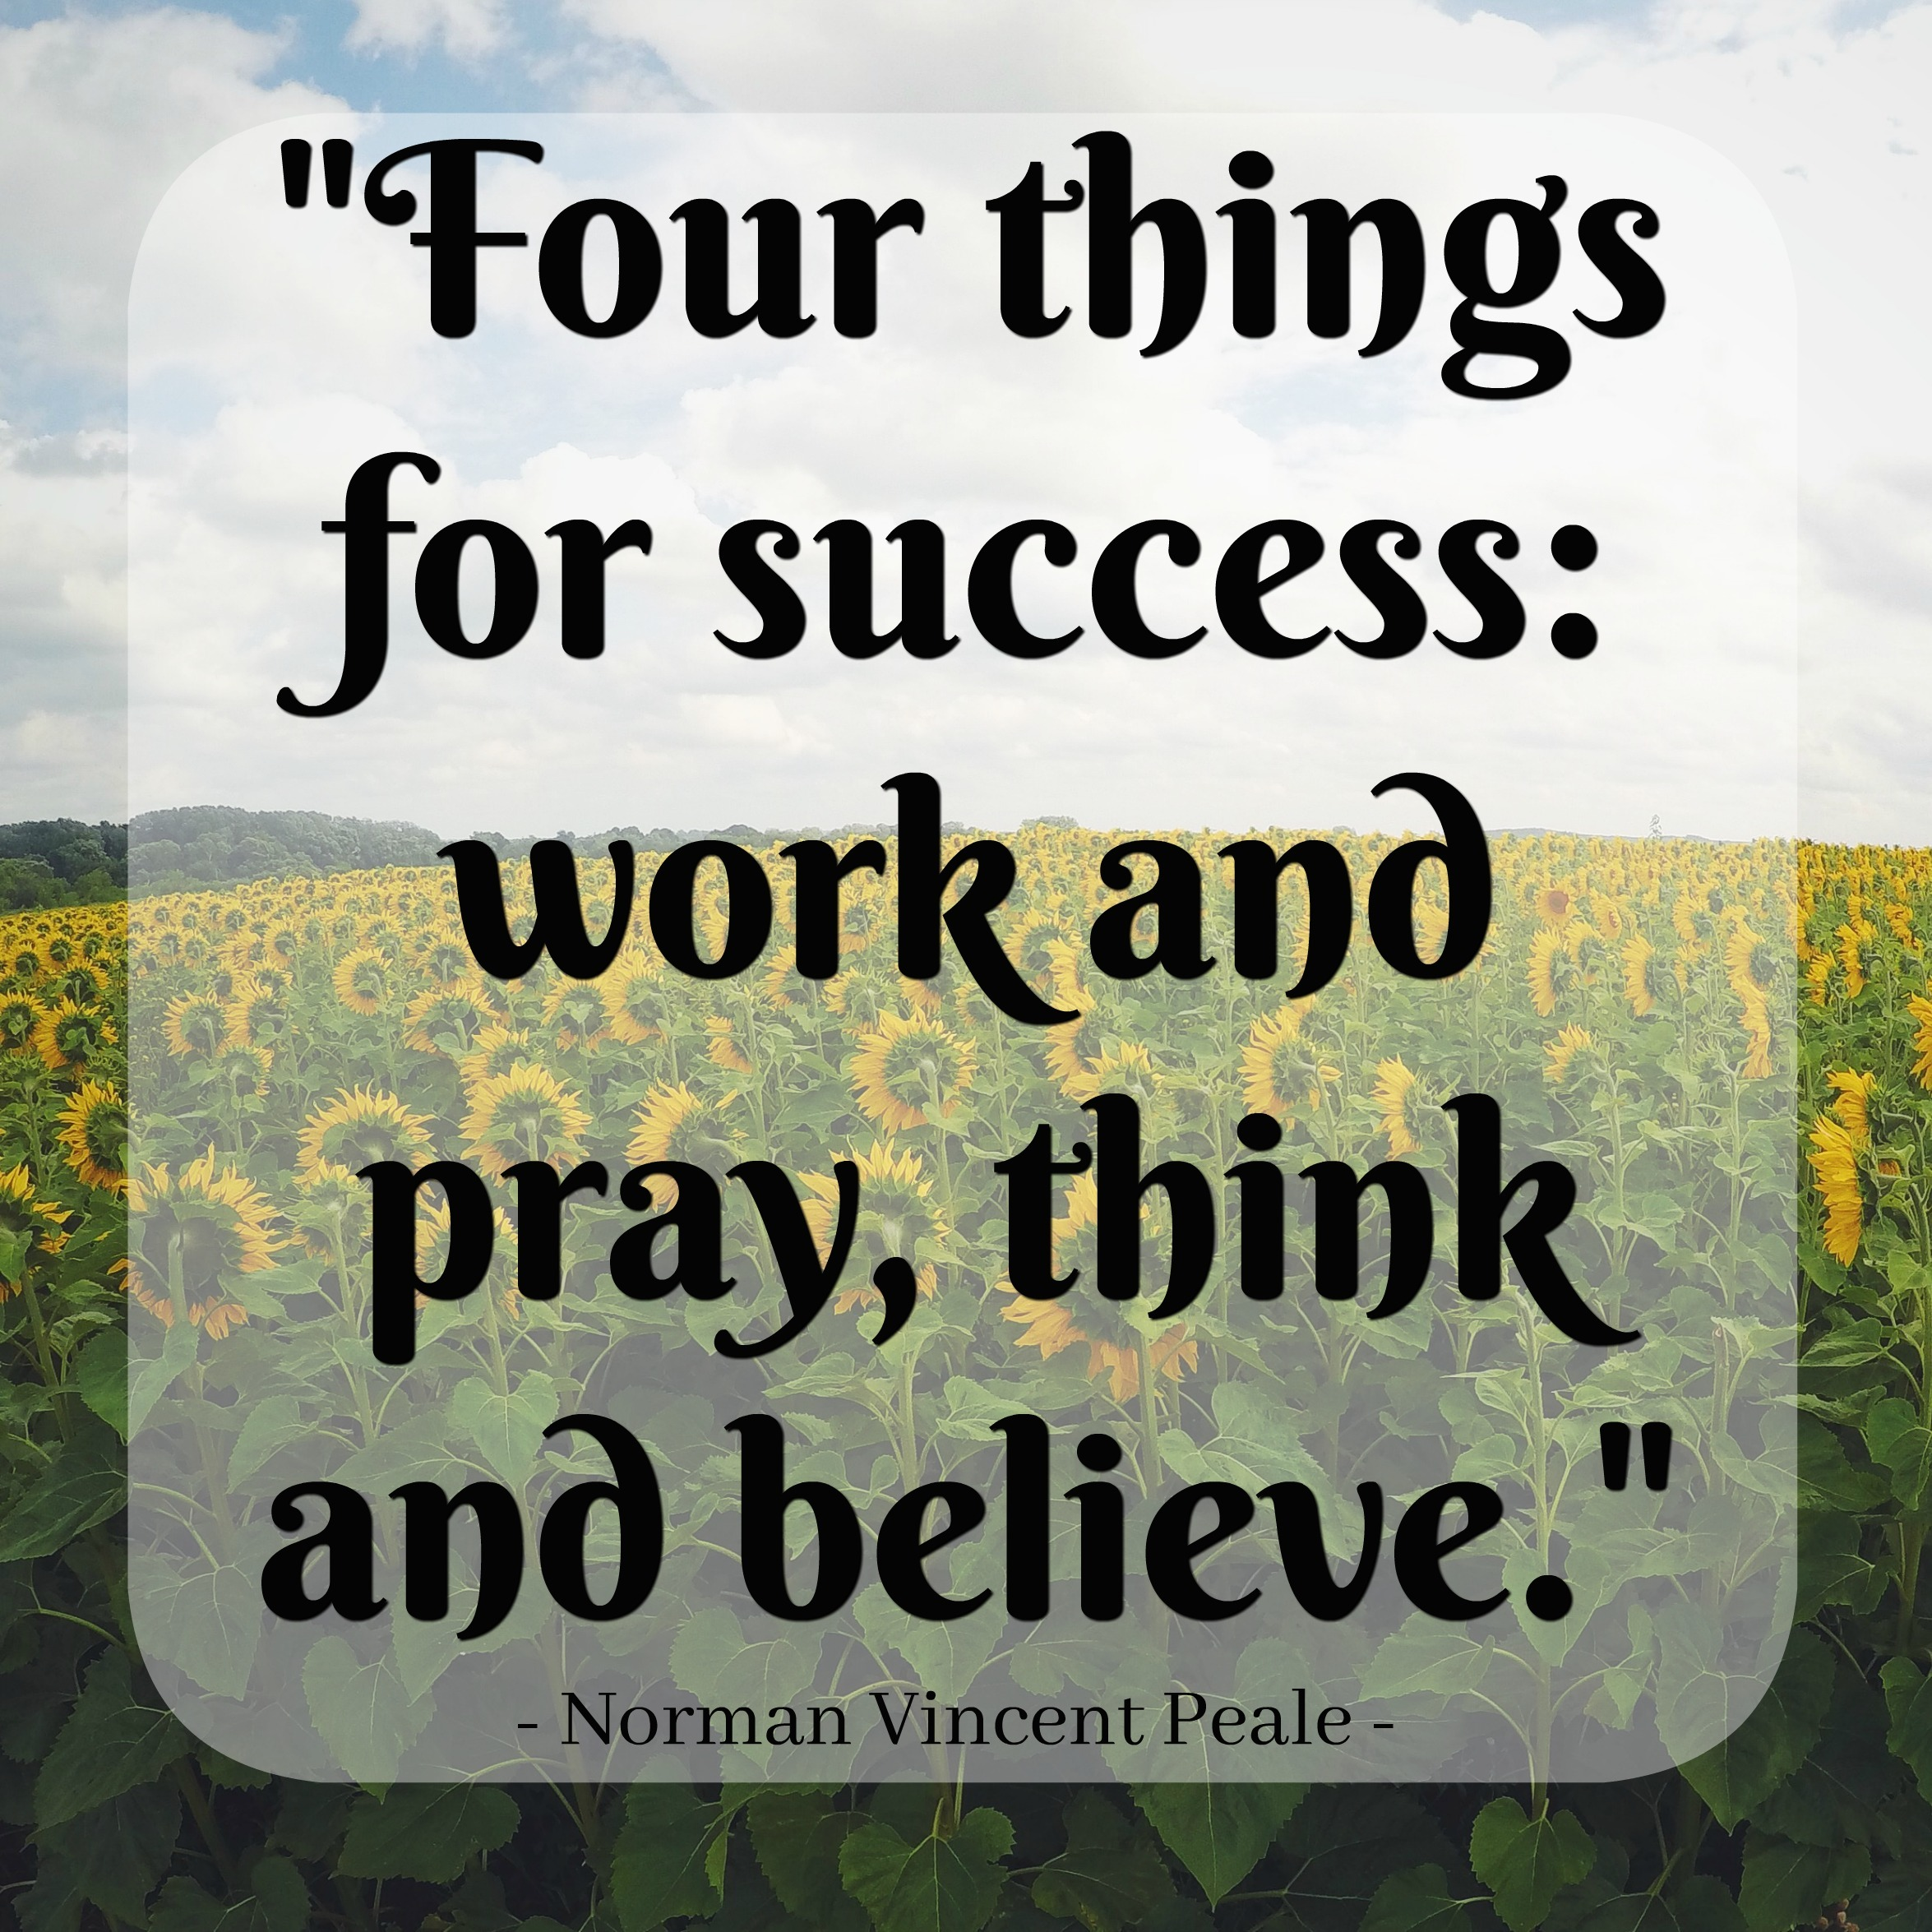 The Power Of Positive Thinking Quotes Norman Vincent Peale: Quotable // From Norman Vincent Peale